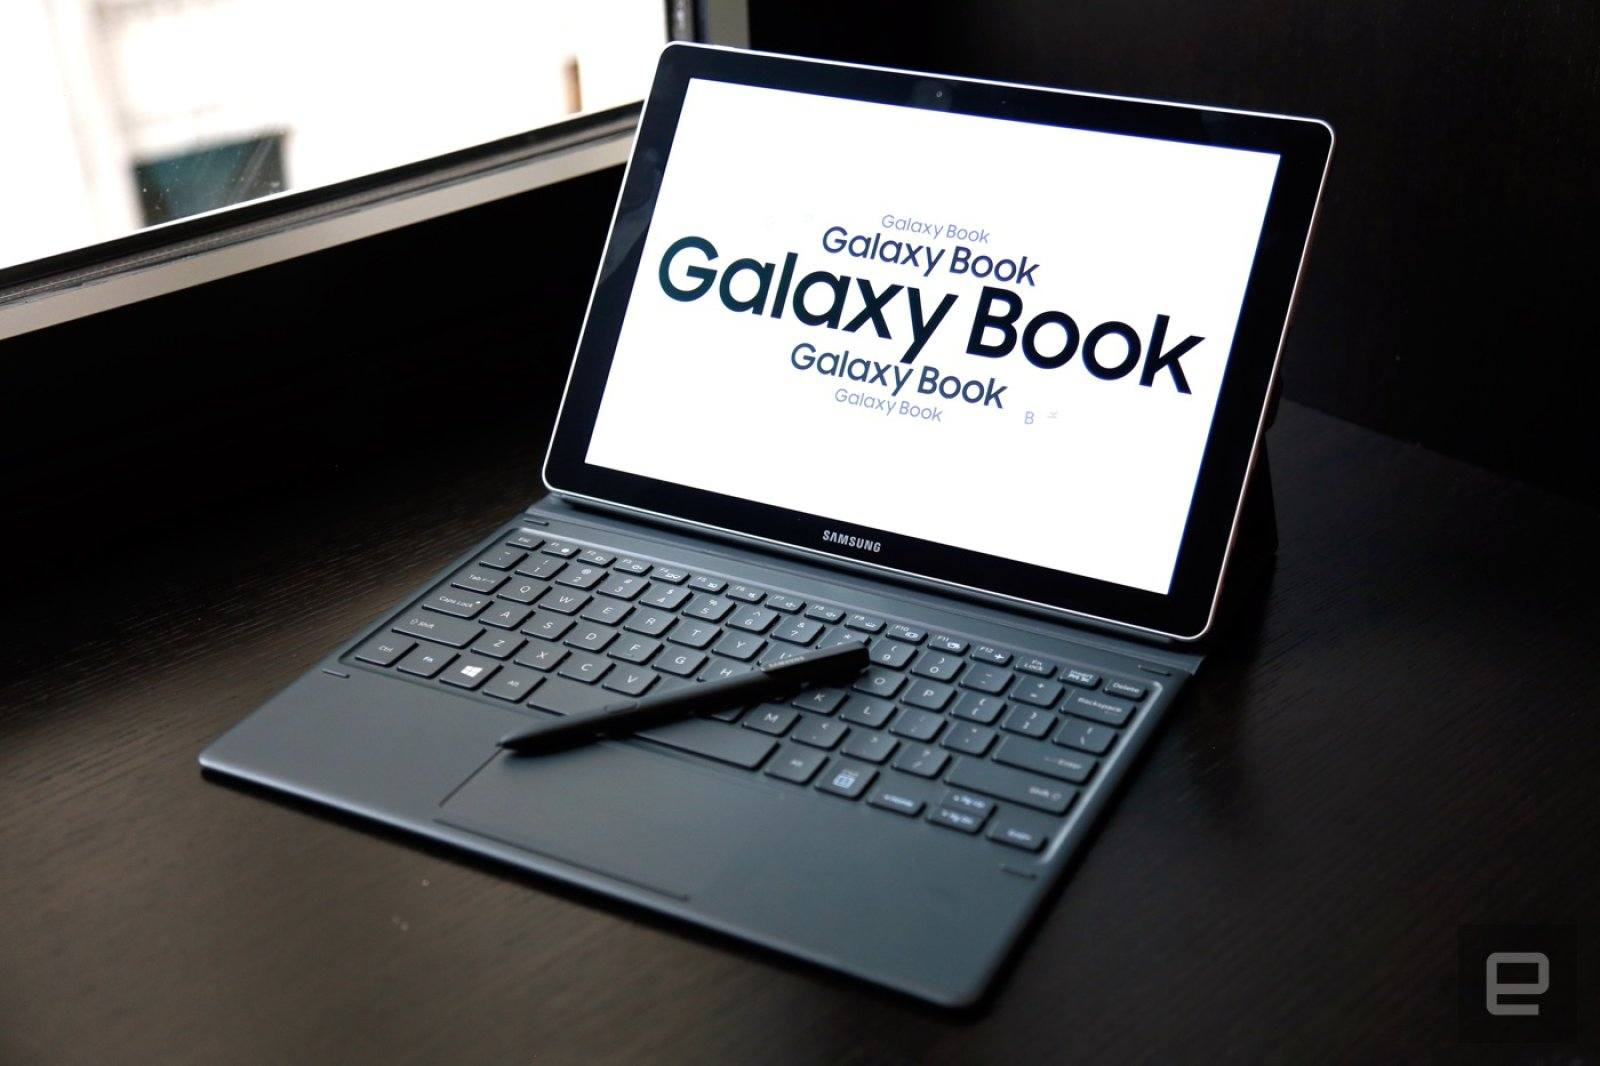 How does Samsung's Galaxy Book stack up?